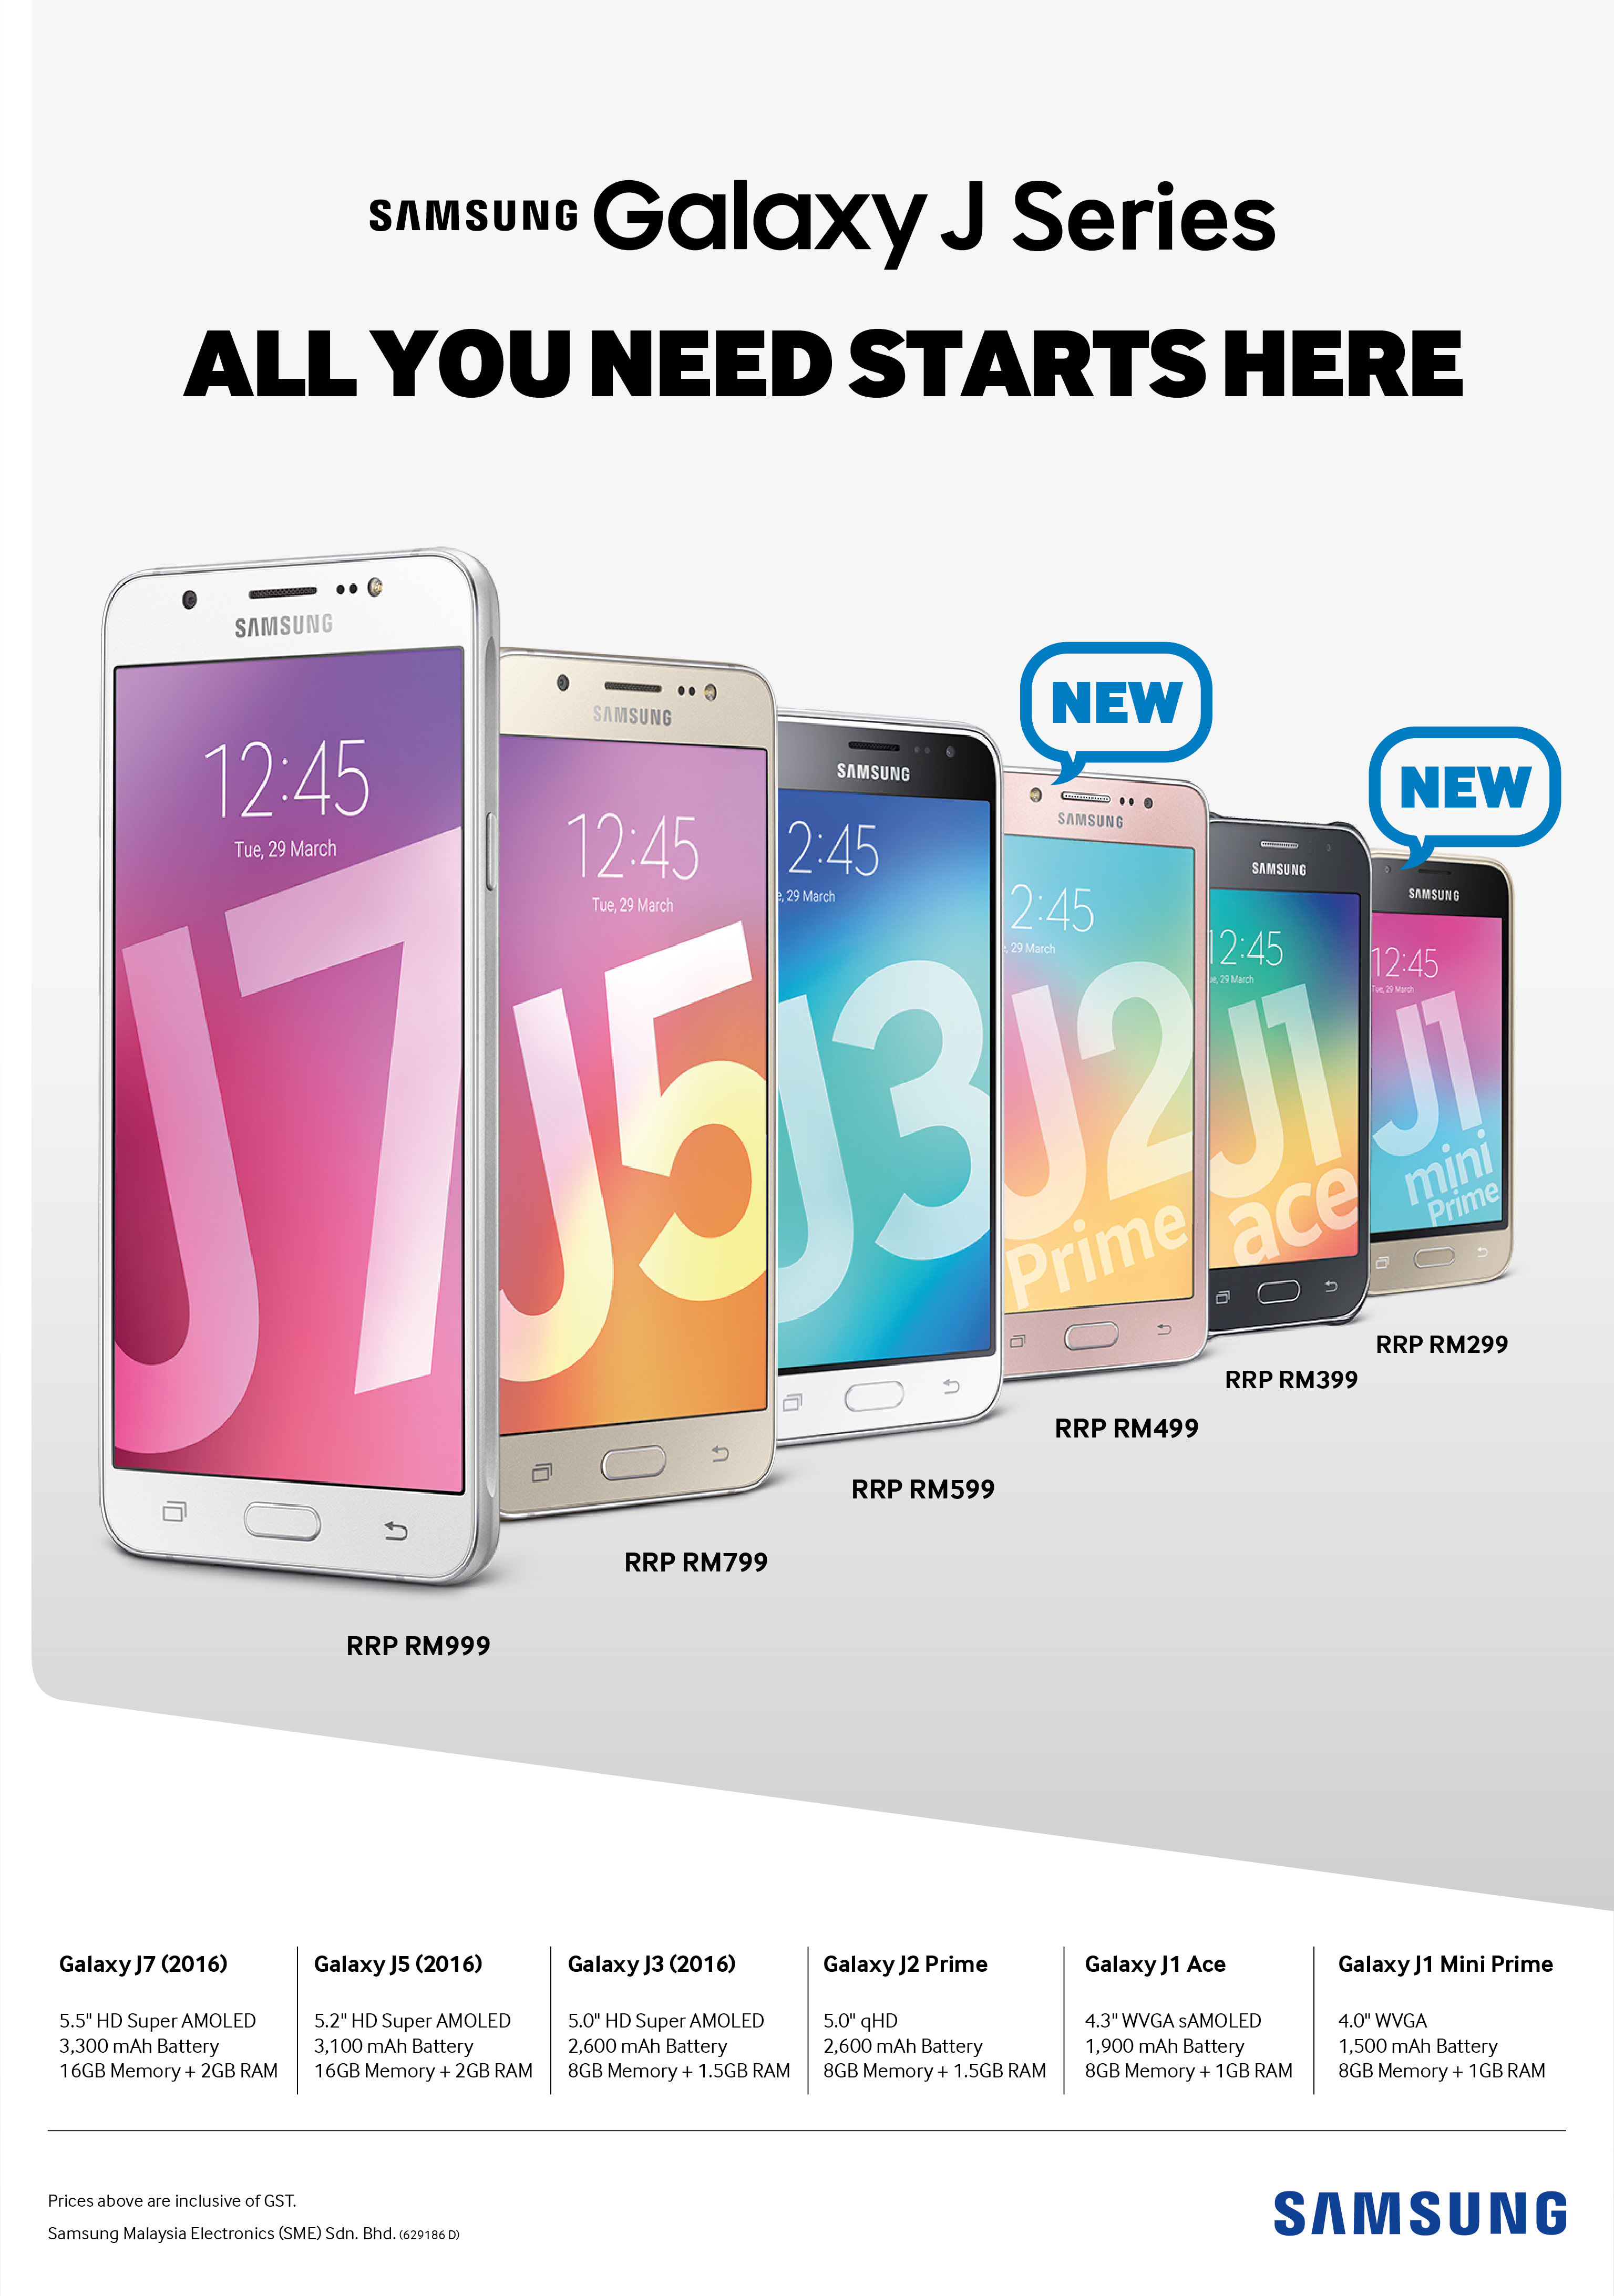 The Galaxy J Series (2016): All You Need Starts Here!